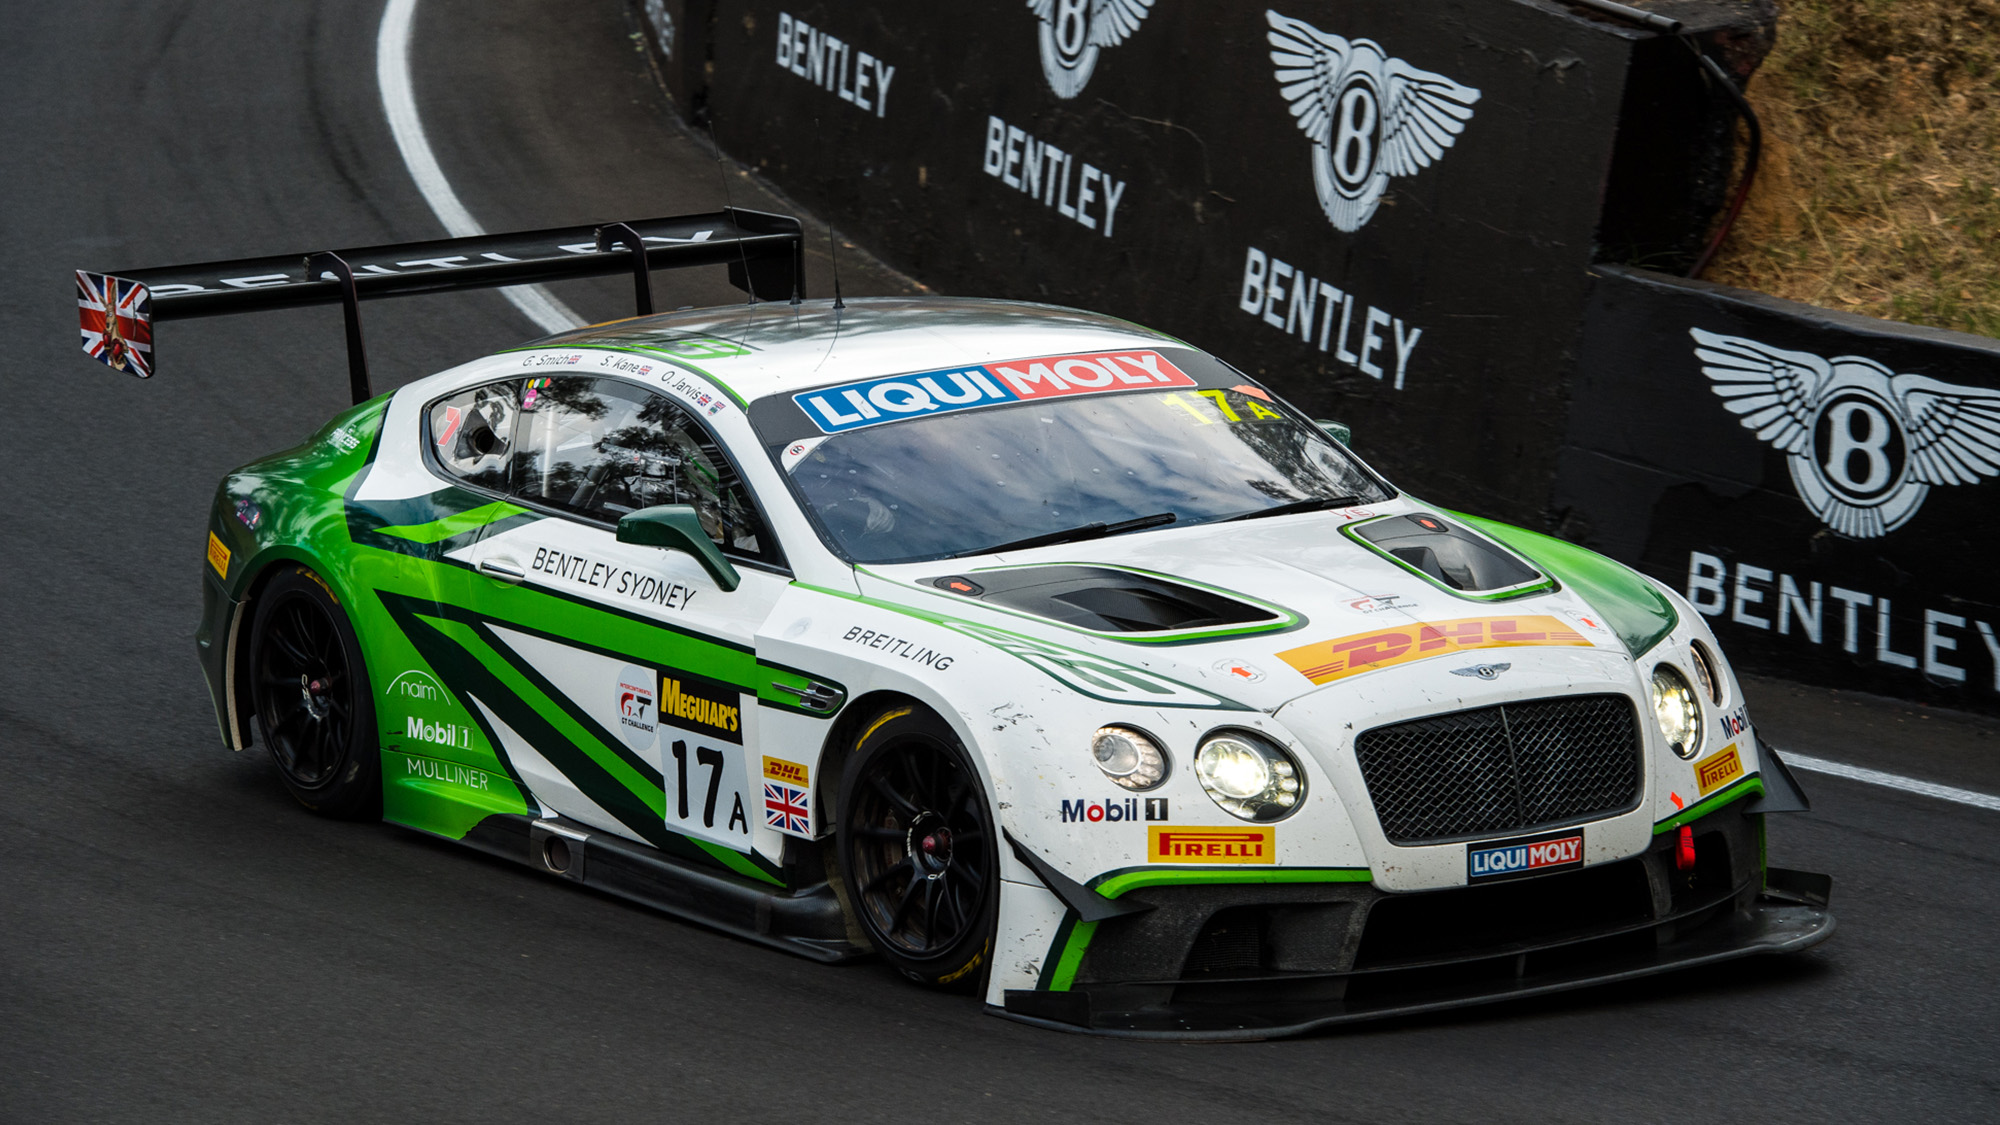 Bentley Continental GT3 in the 2017 Bathurst 12 Hours